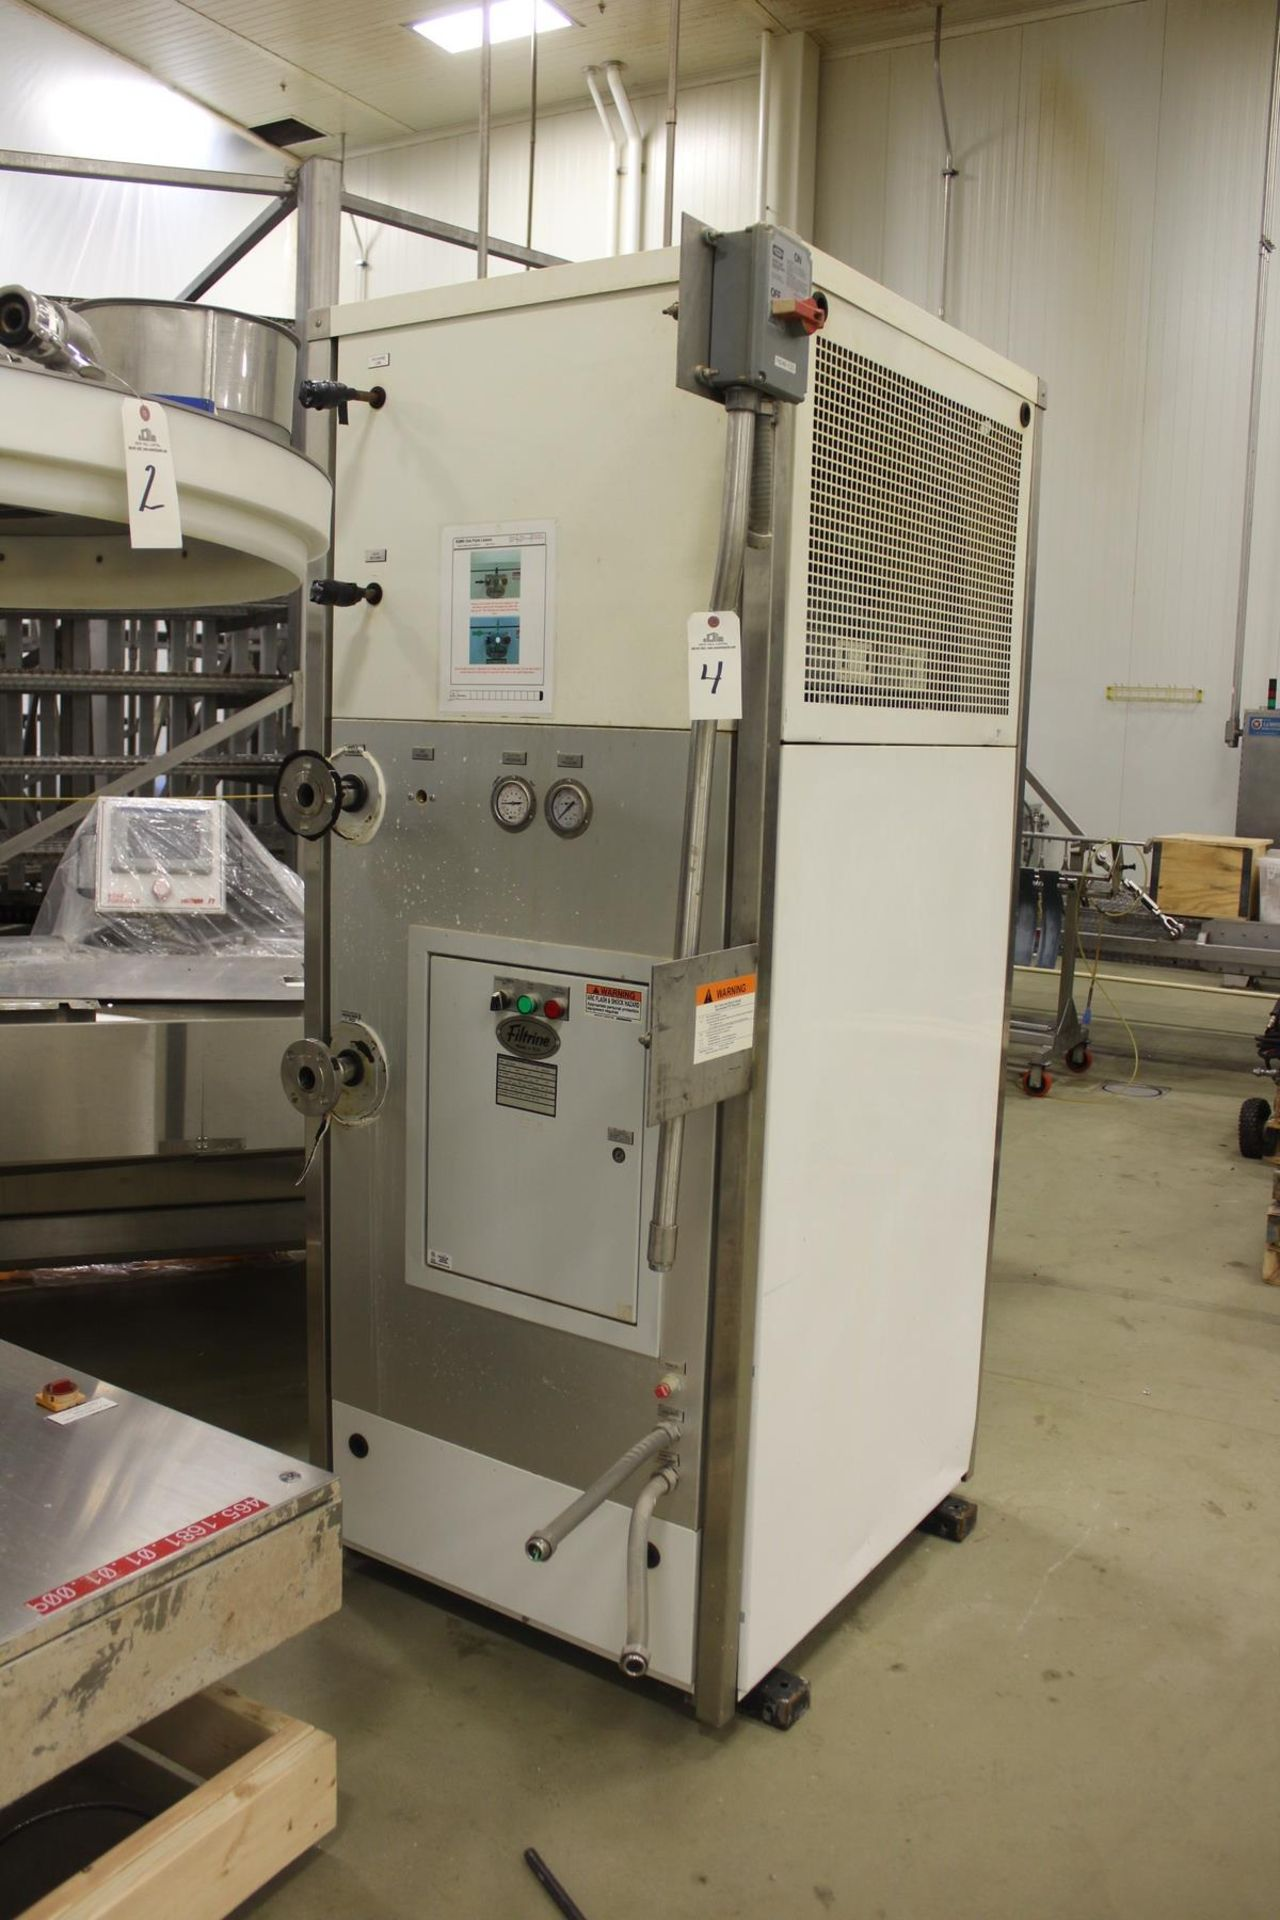 Lot 4 - 2014 Filtrine Water Chiller, M# PB-300AR, S/N 0982/14, W/ Condenser Unit | Rig Fee: $1750